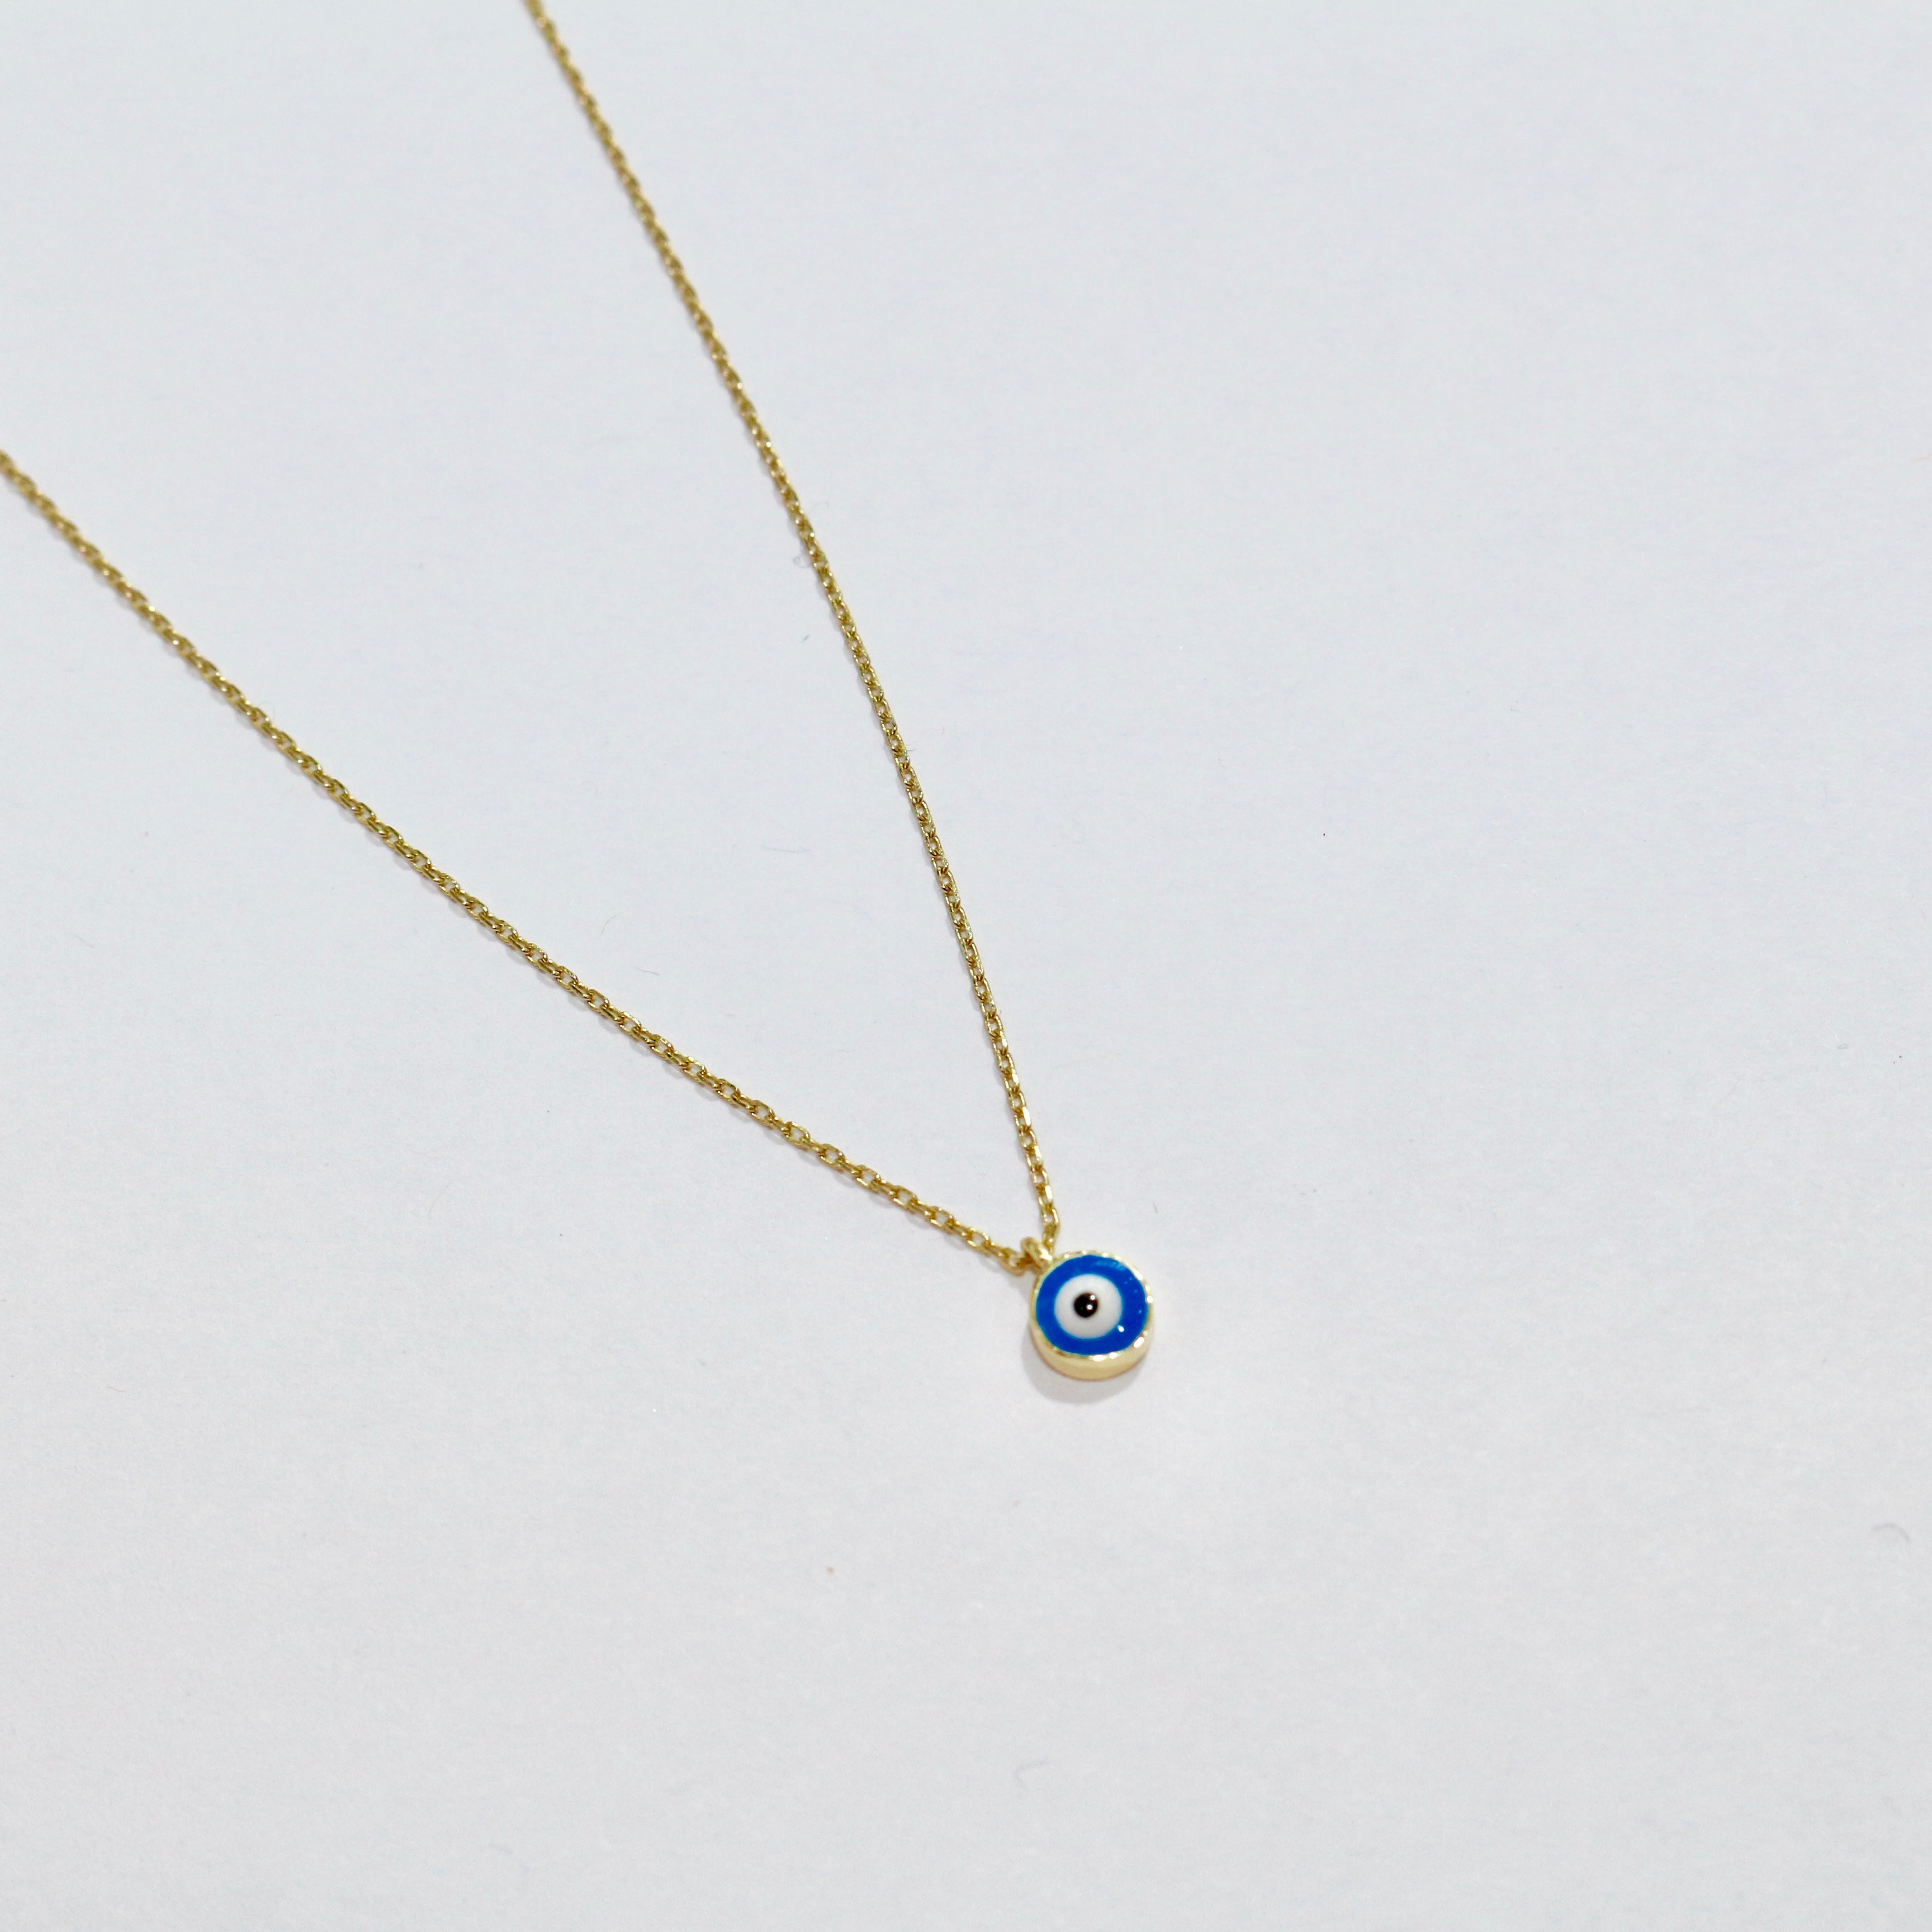 Single Evil Eye Necklace - Magnolia Jewels & More